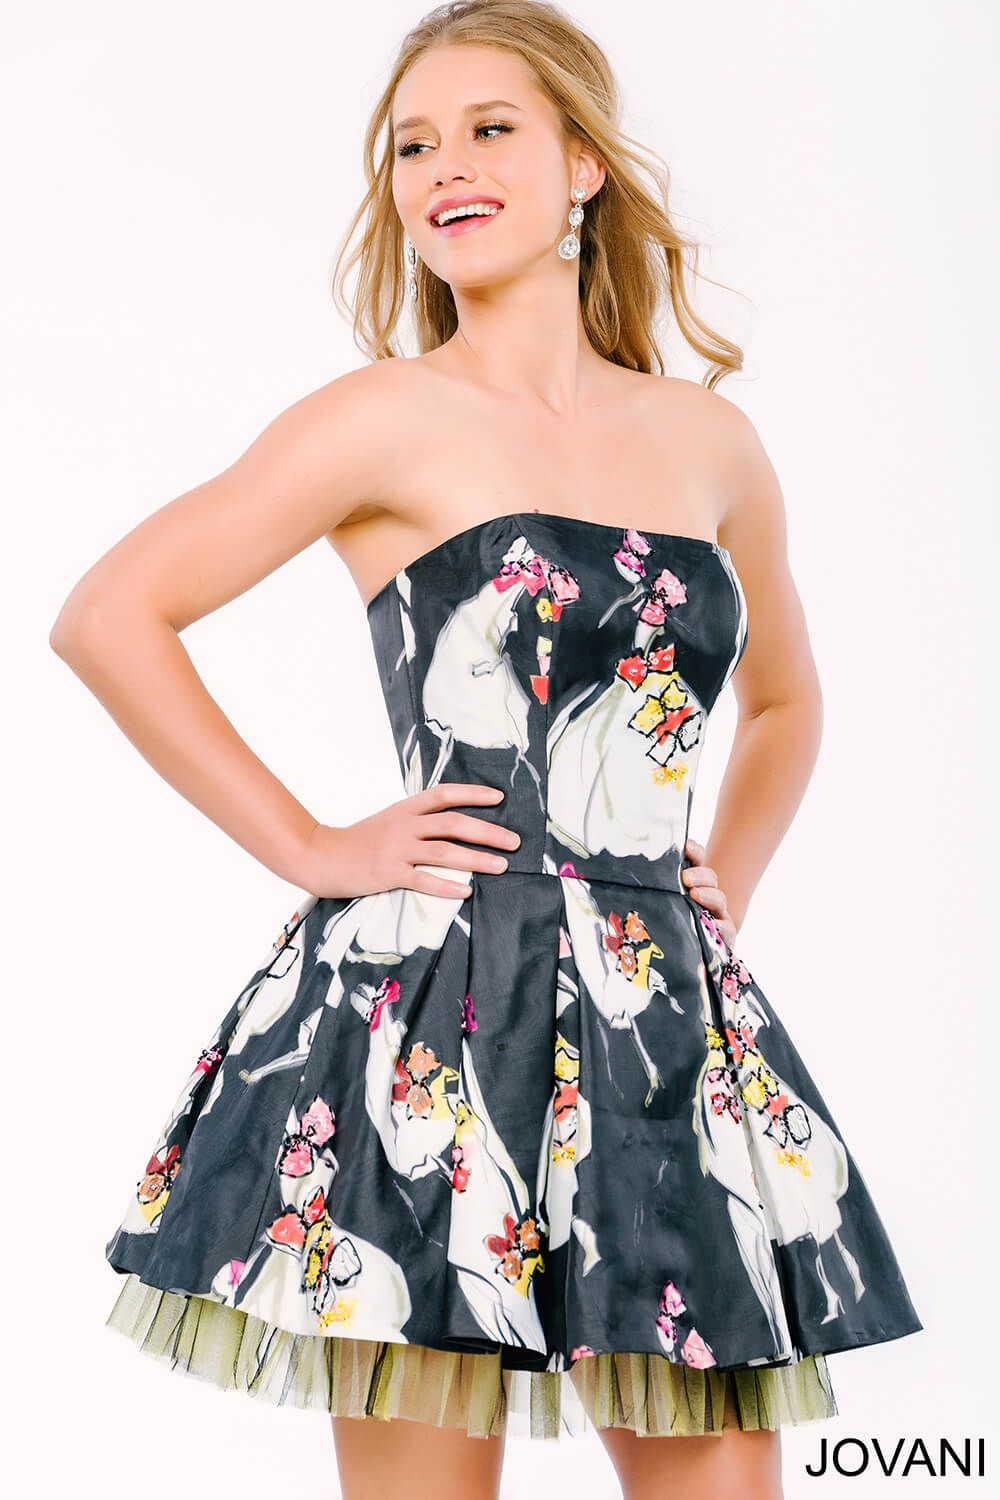 This jovani floral printed dress with tulle underlay is sure